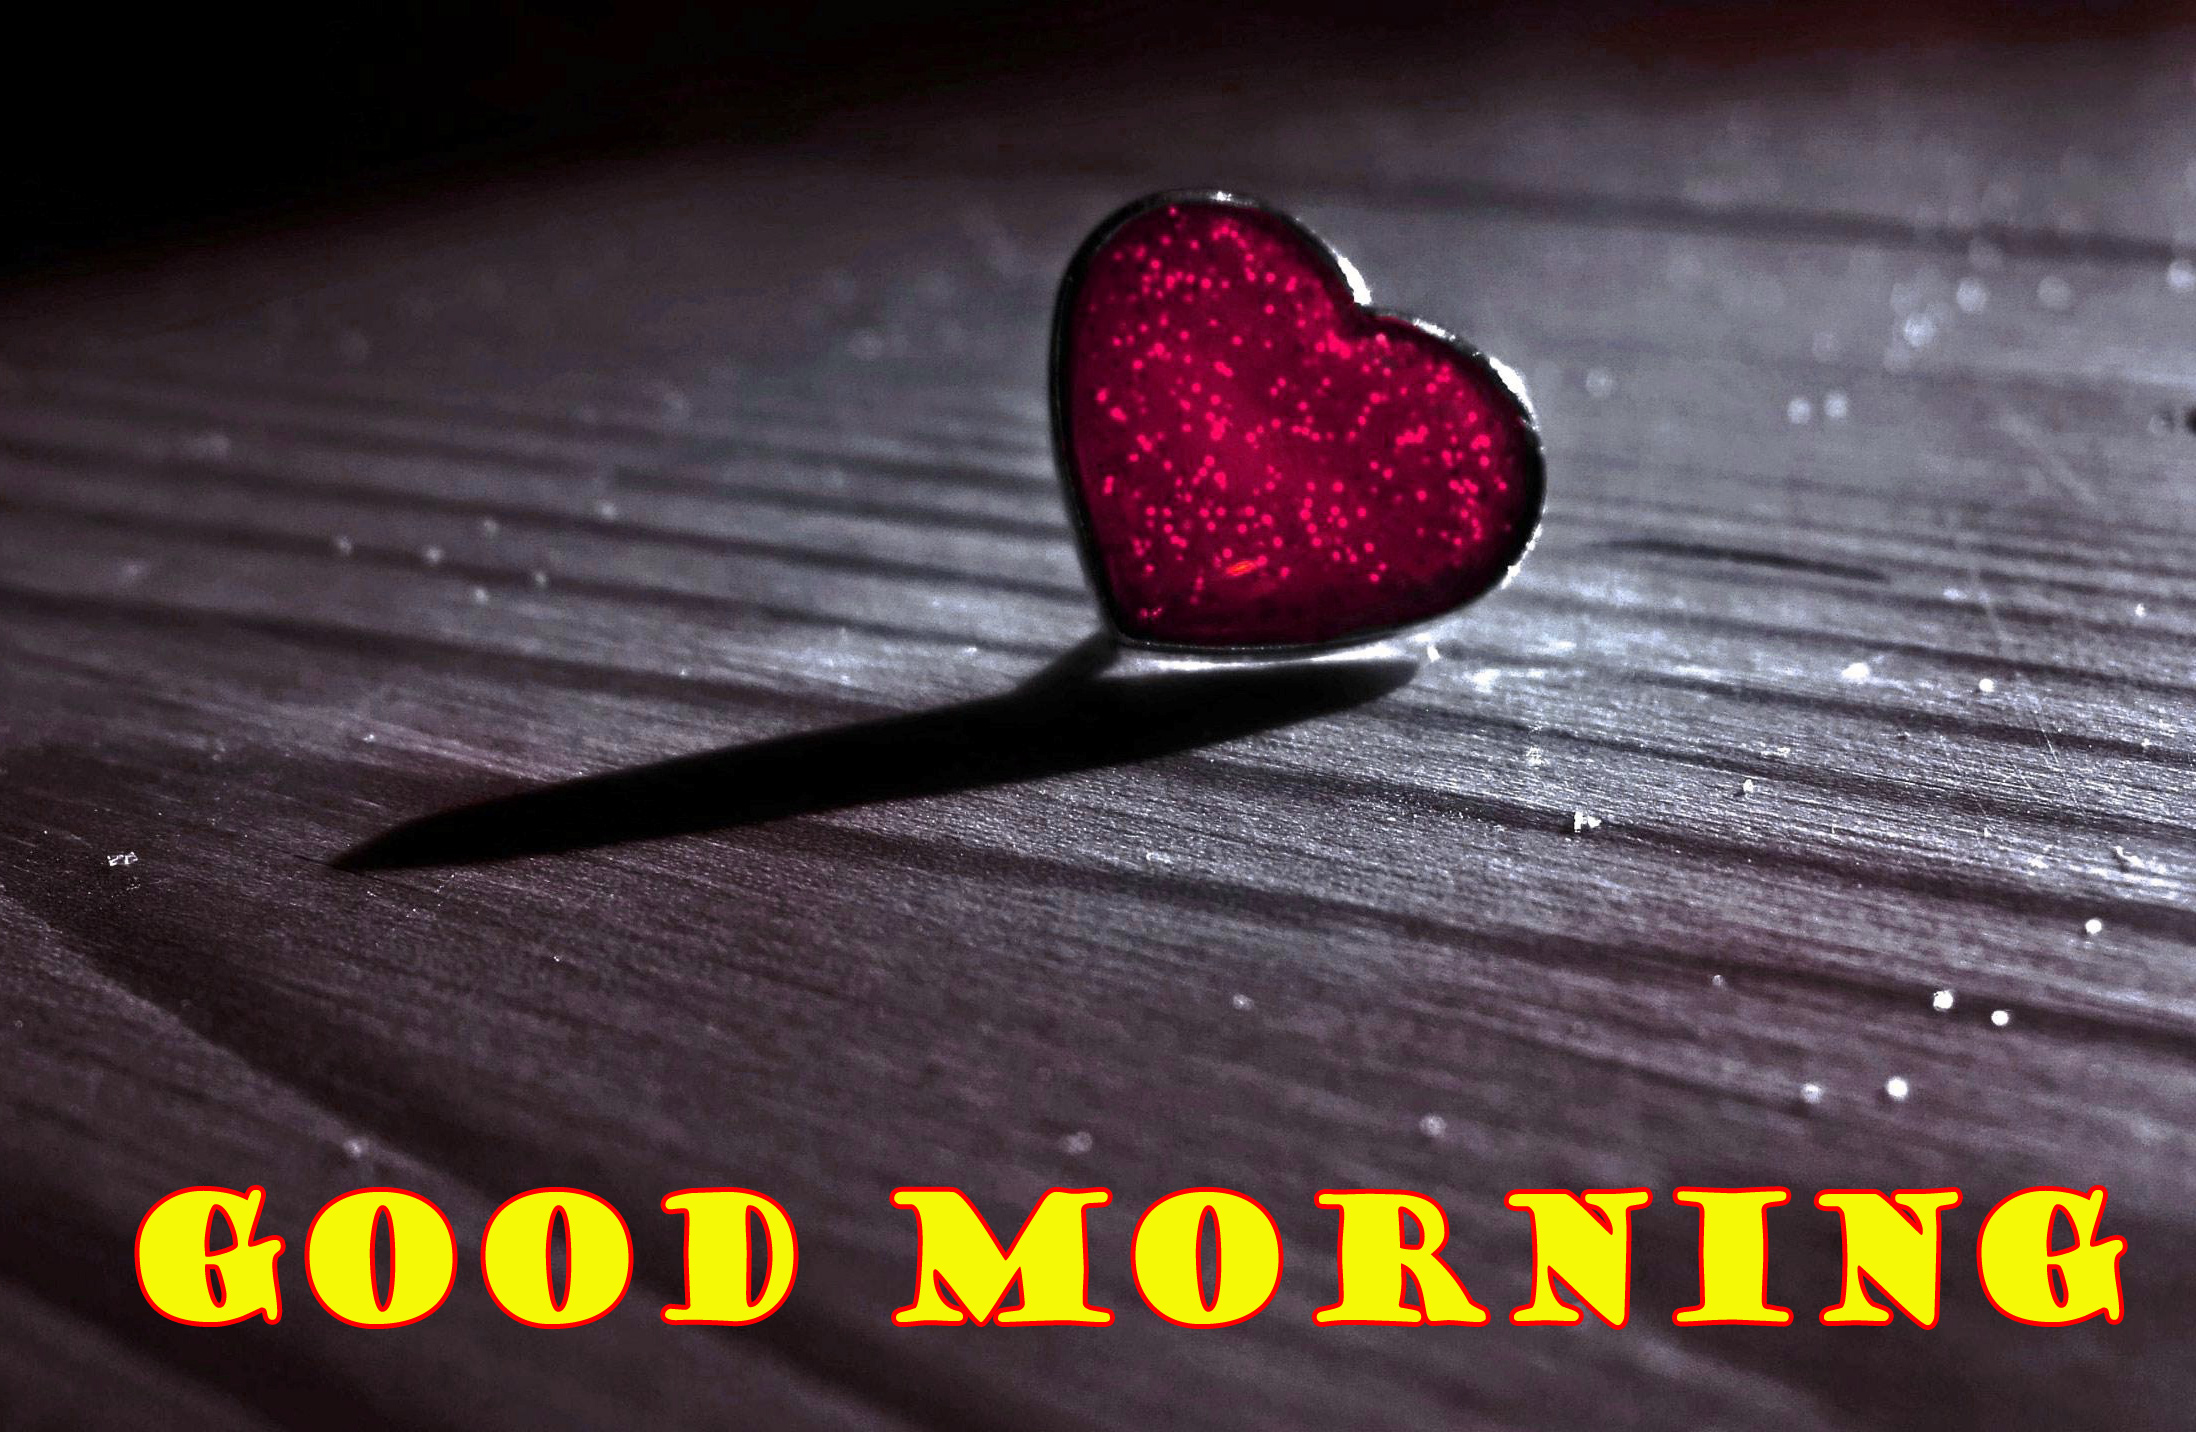 Special Wonderful Good Morning Photo Wallpaper Pictures Download